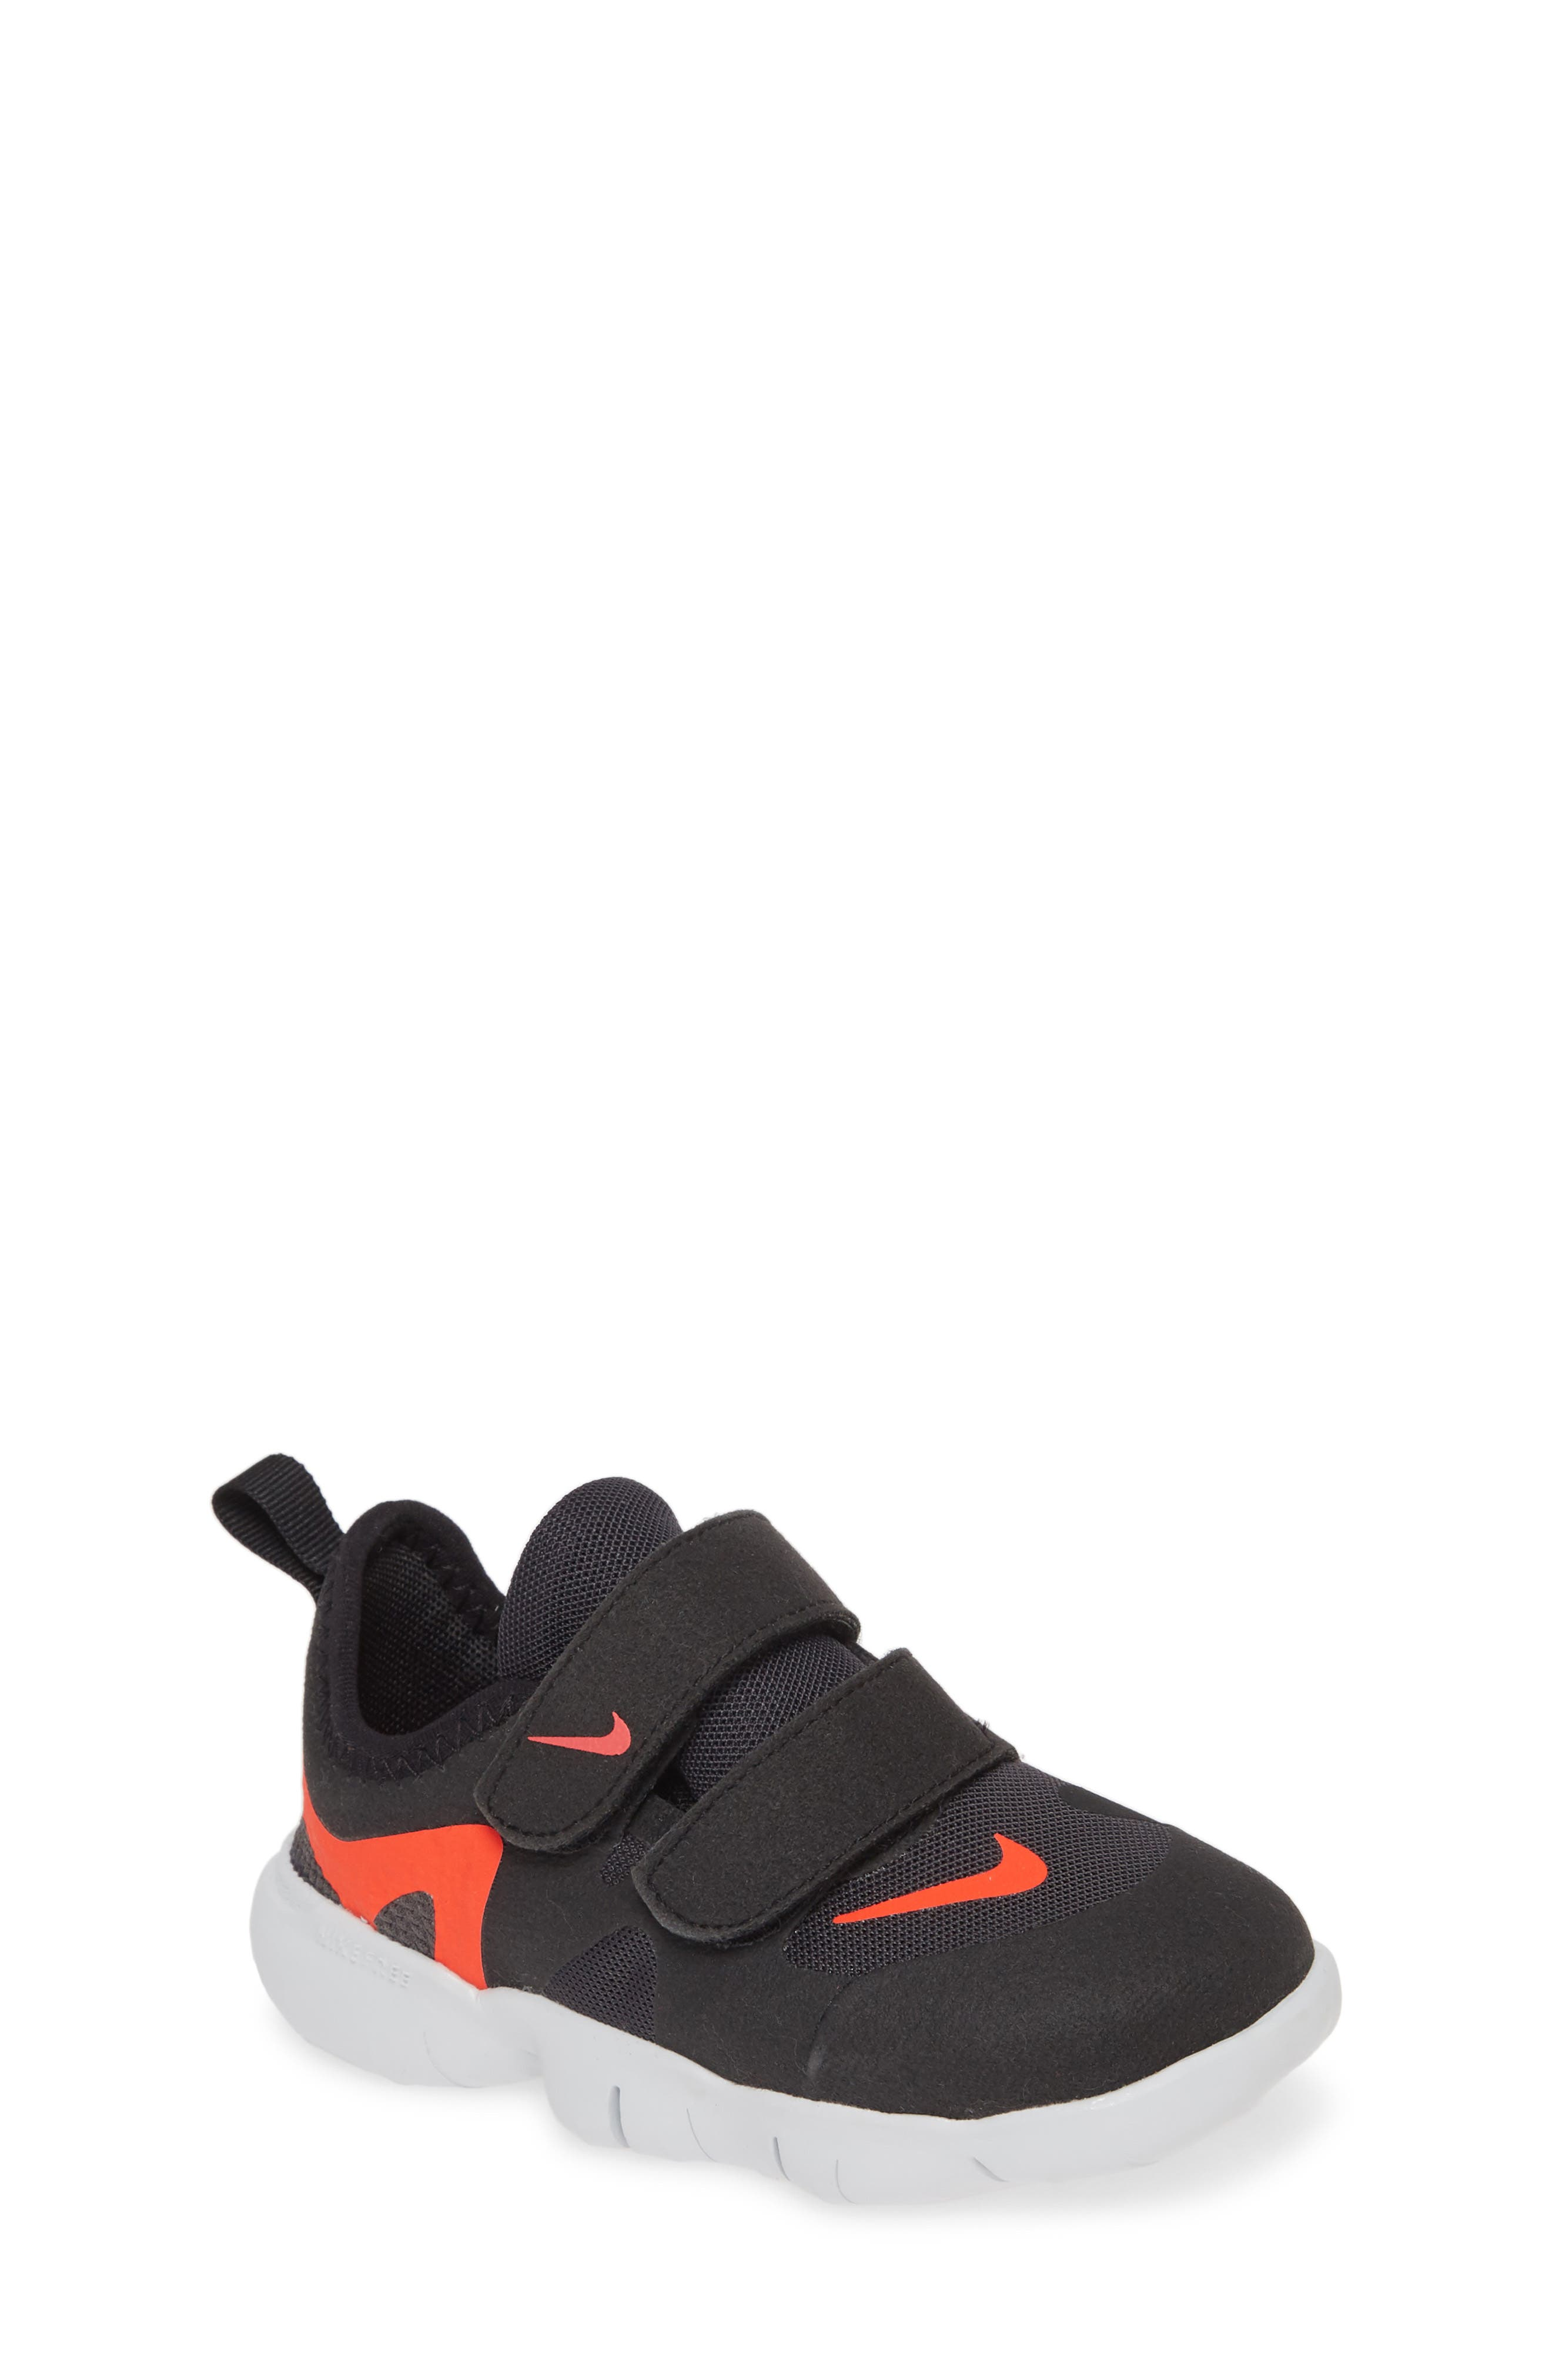 Boys' Shoes | Nordstrom